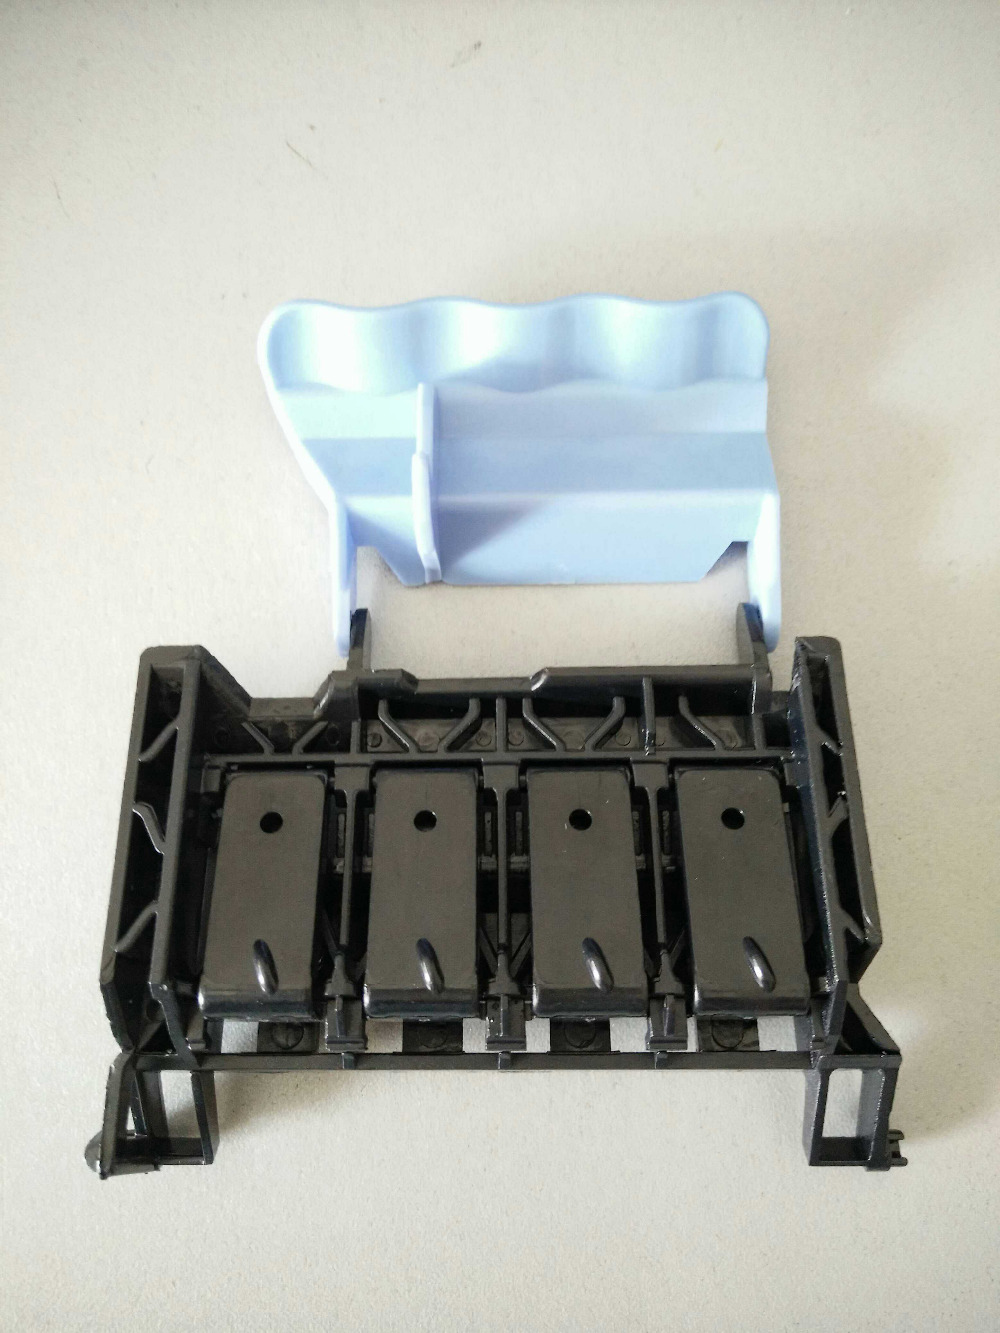 Printhead Carriage Assembly Cover For HP 500 800 510 Printer C7769-69376 Upper Head Cover c7769 60151 printhead carriage assembly for designjet 500 510 800 ps c7769 69376 ink plotter printer parts